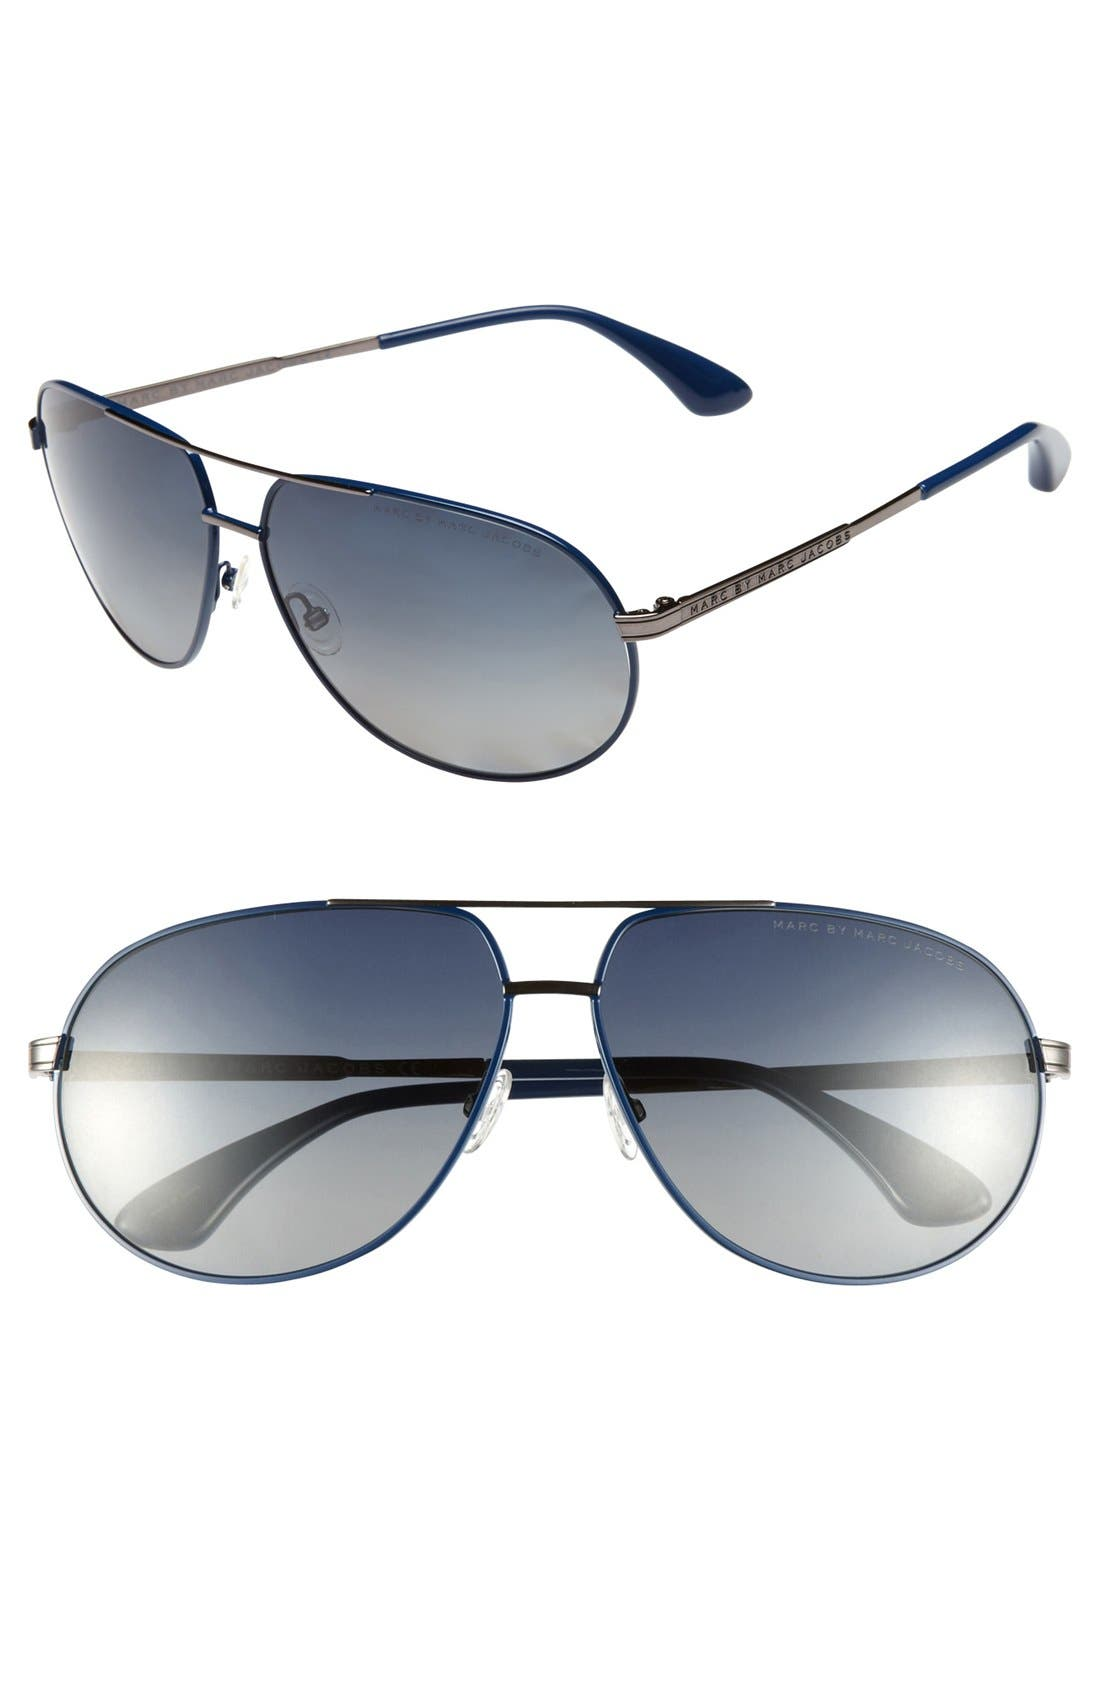 Main Image - MARC BY MARC JACOBS 63mm Polarized Metal Aviator Sunglasses